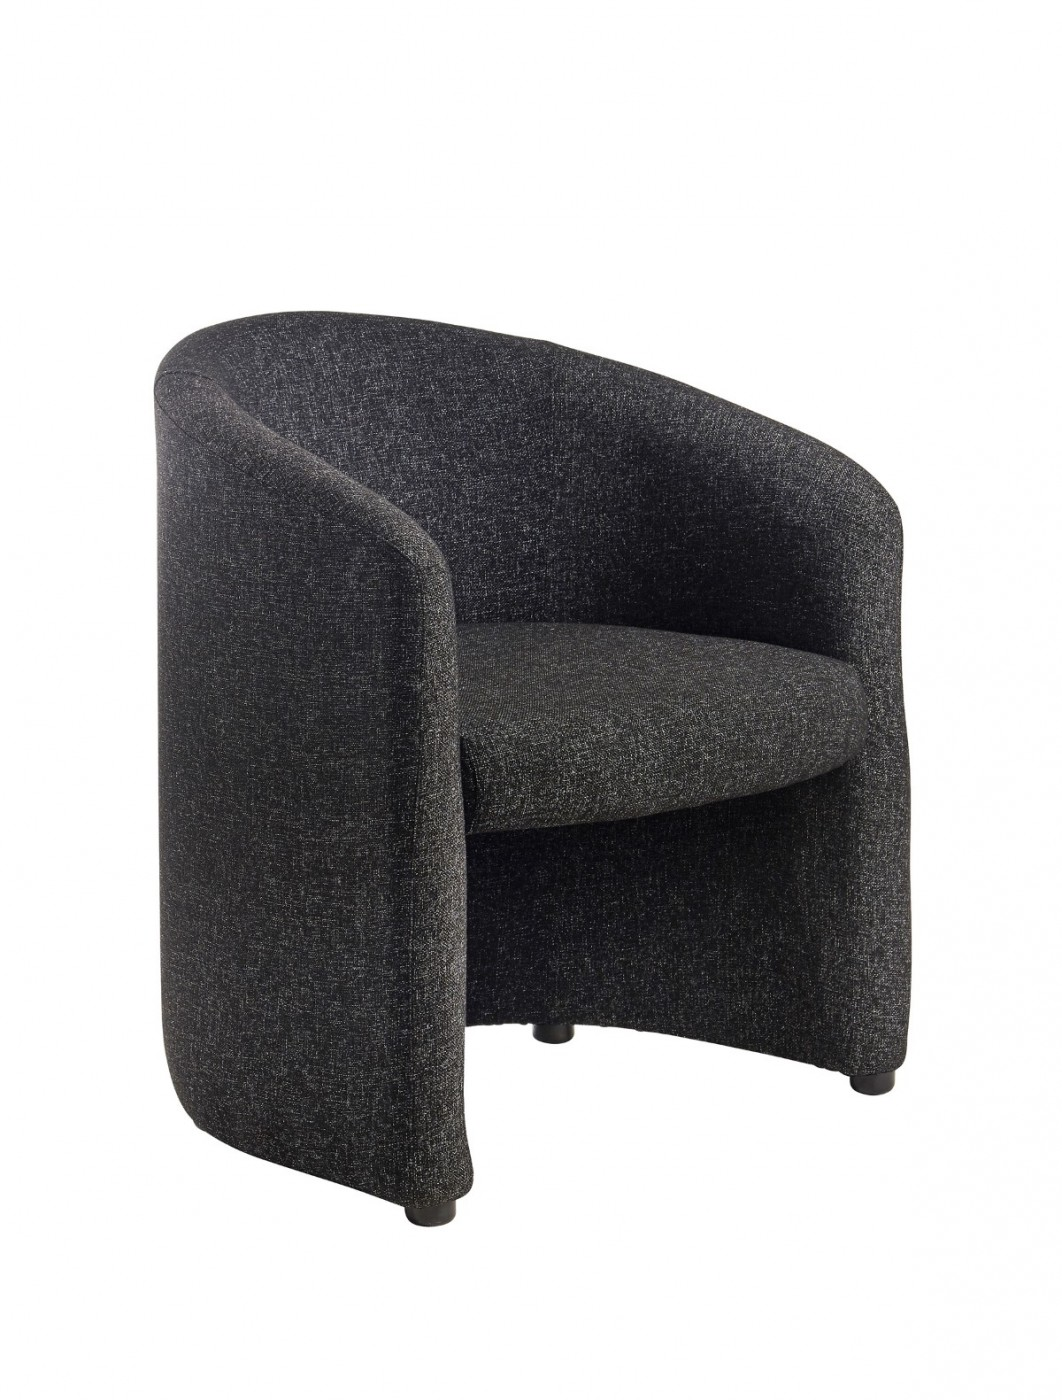 Brilliant Reception Seating Dams Slender Fabric Tub Chair Sle50001 Pabps2019 Chair Design Images Pabps2019Com